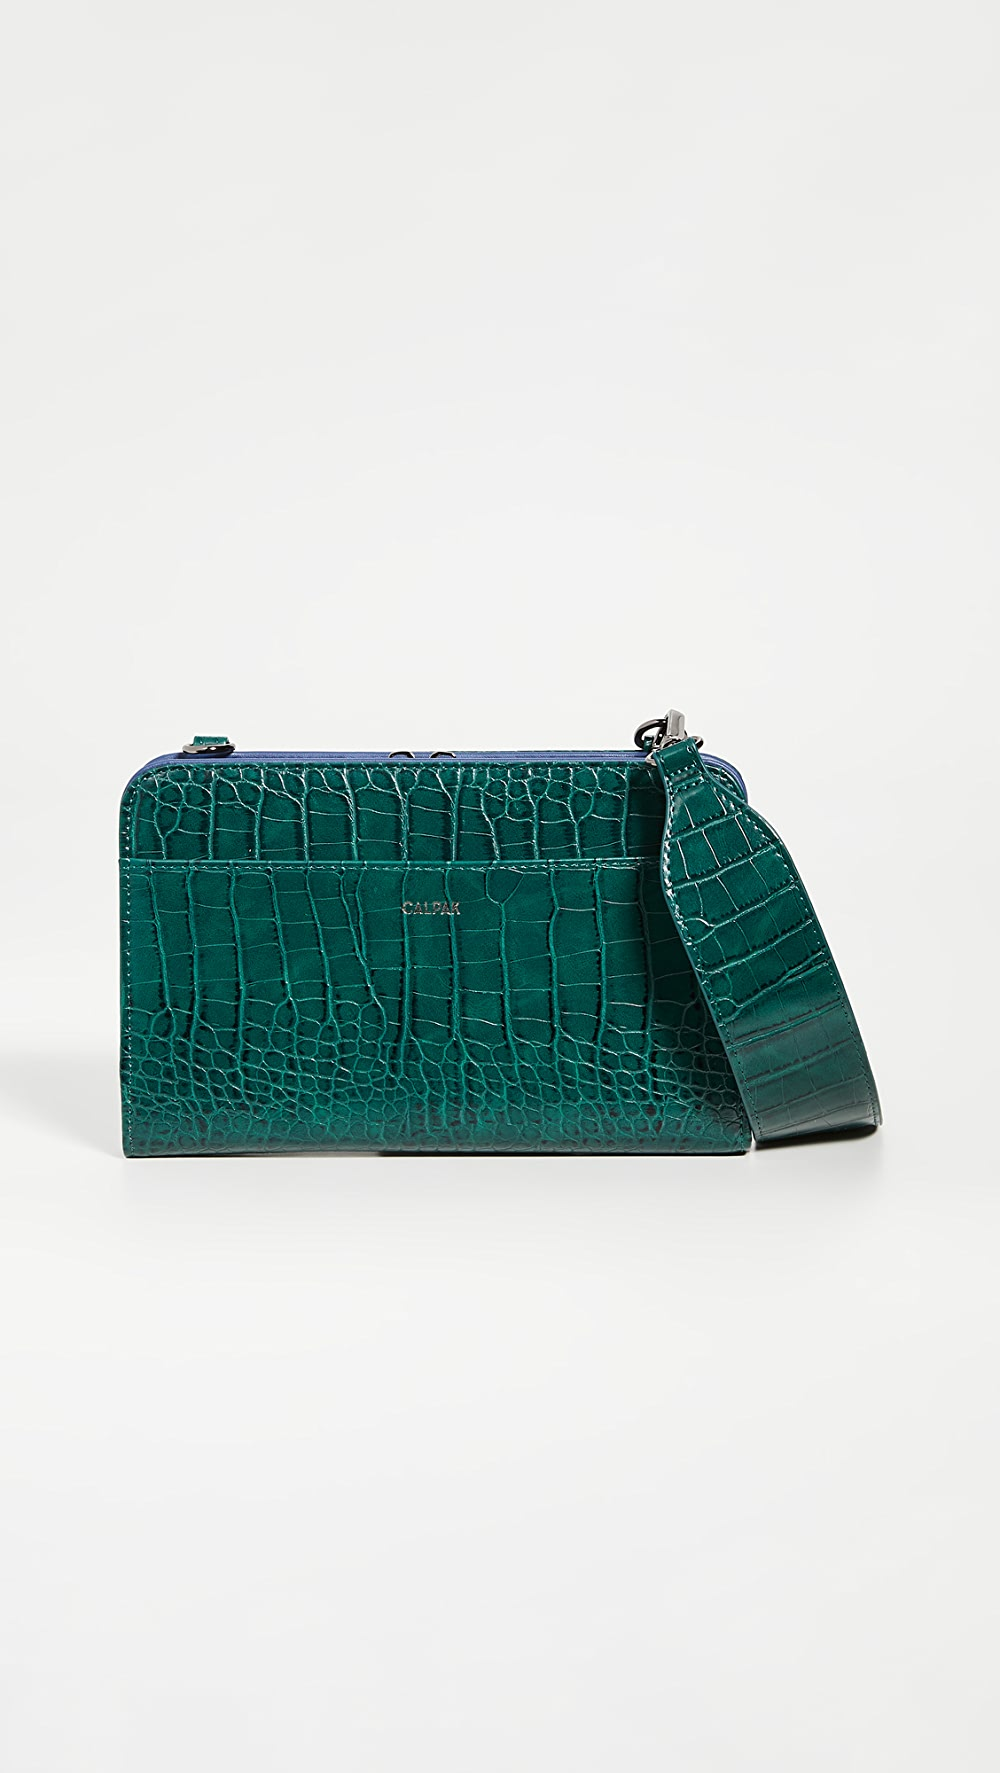 Candid Calpak - Croc Travel Wallet Up-To-Date Styling